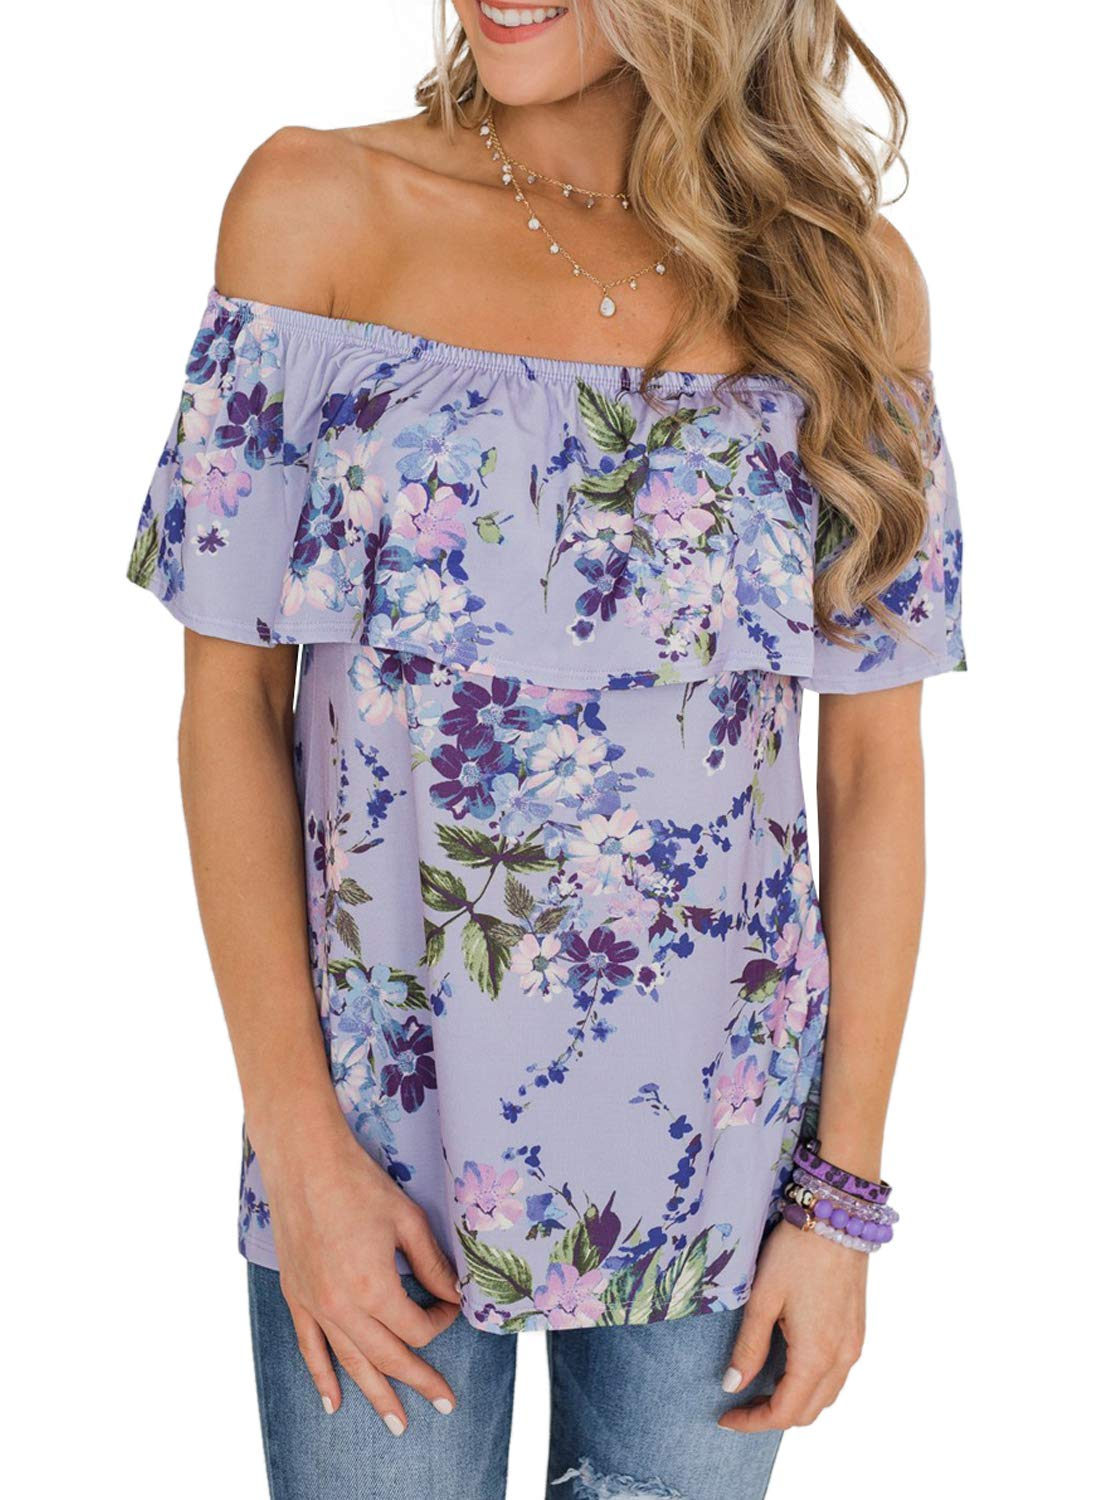 Asvivid Womens Casual Floral Printed Off The Shoulder Tops Ruffle Short Sleeve Loose Vacation T-Shirt S Purple